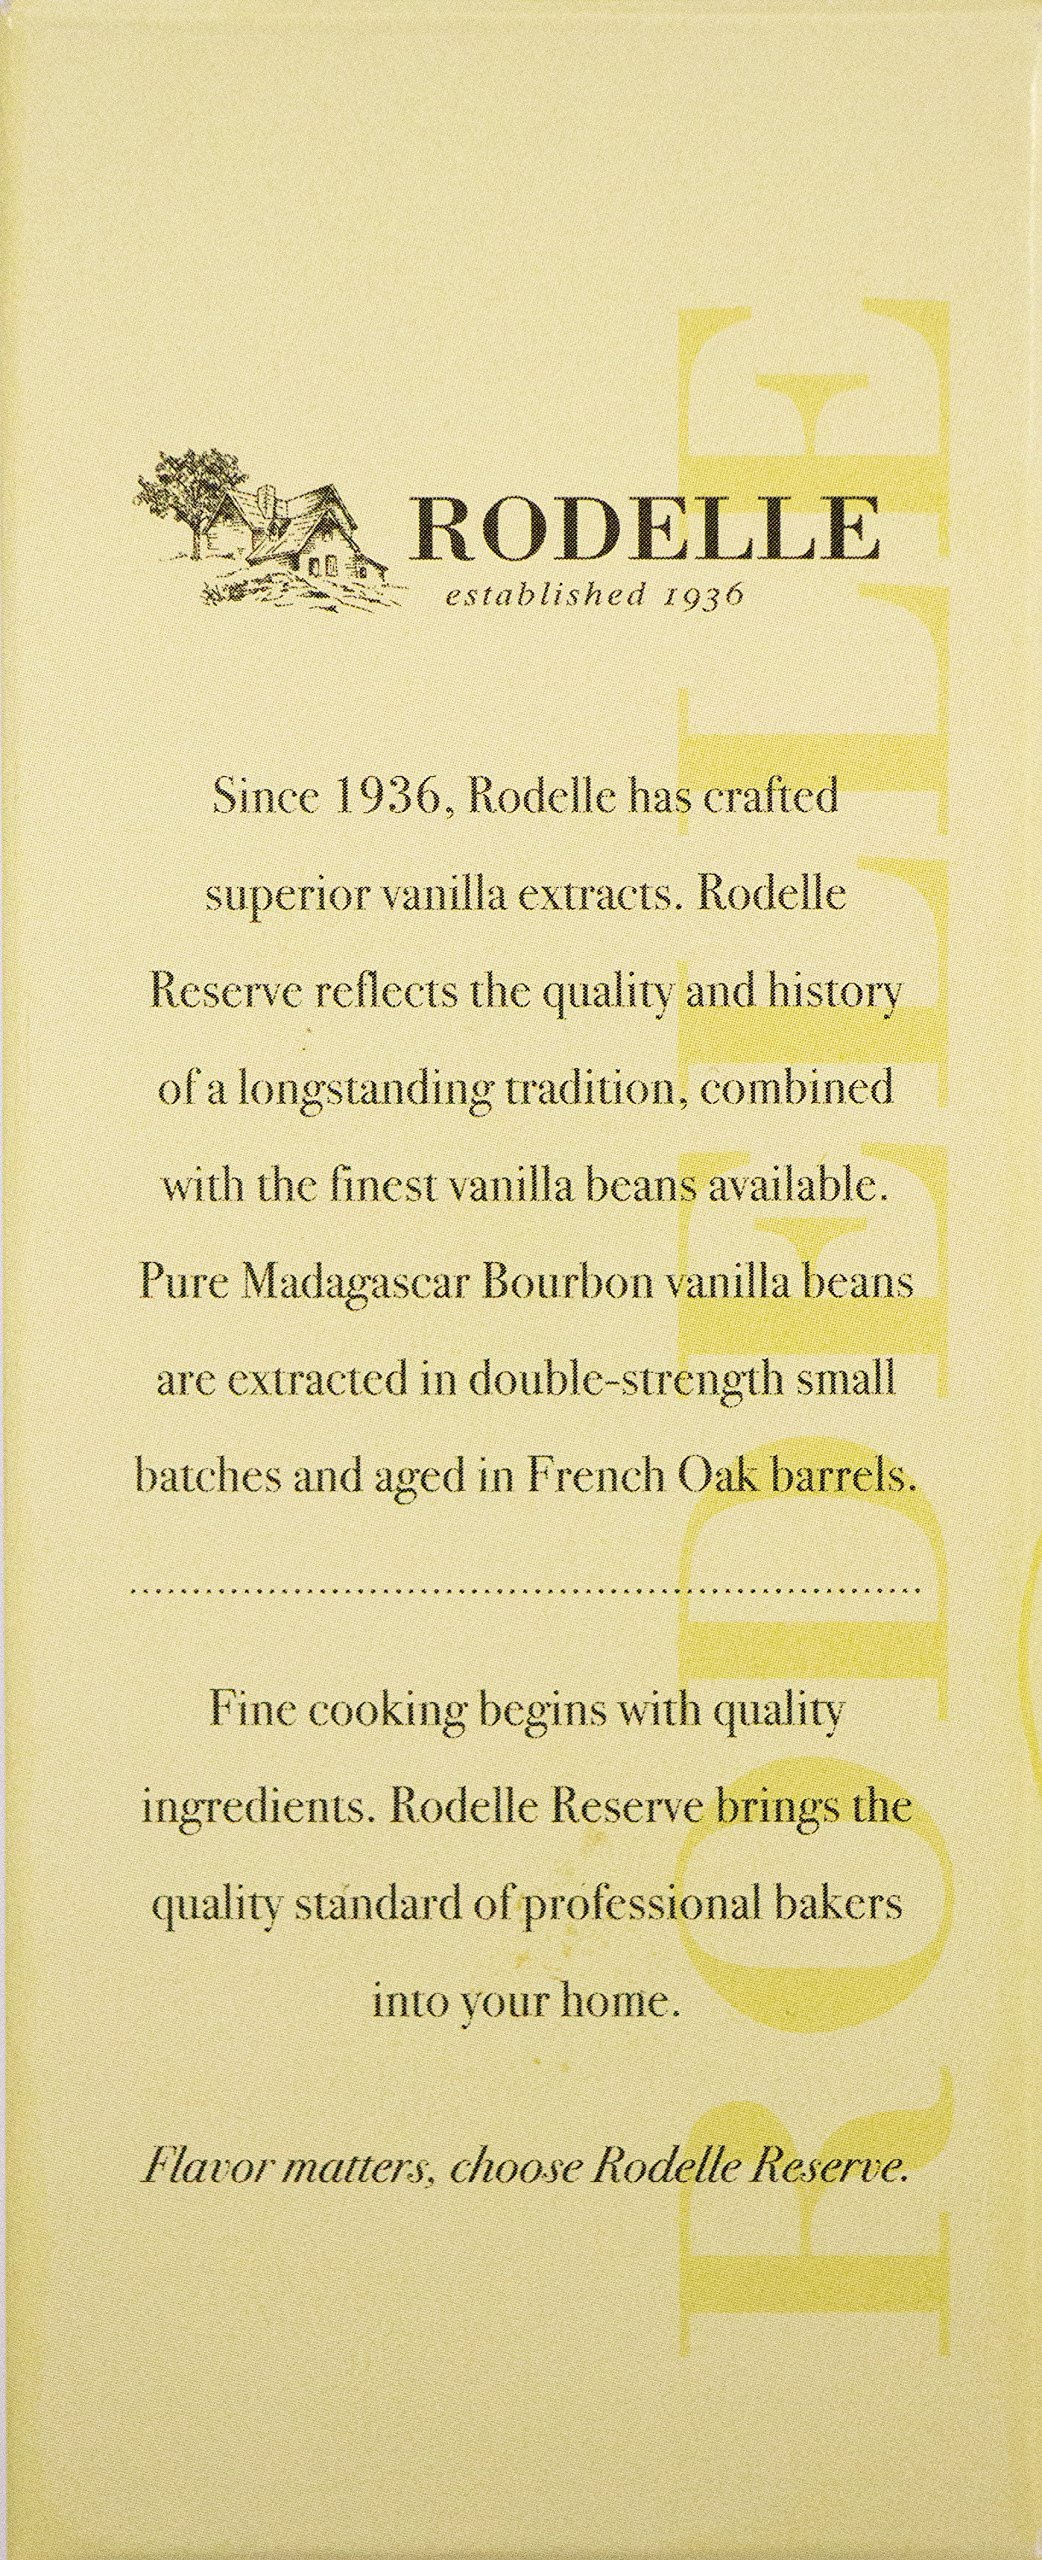 Rodelle Reserve Pure Vanilla Extract, 6.75 Oz, Madagascar Bourbon, Double Fold, Aged in French Oak, Contains Gourmet Vanilla Bean, Gift Box Included by Rodelle (Image #4)